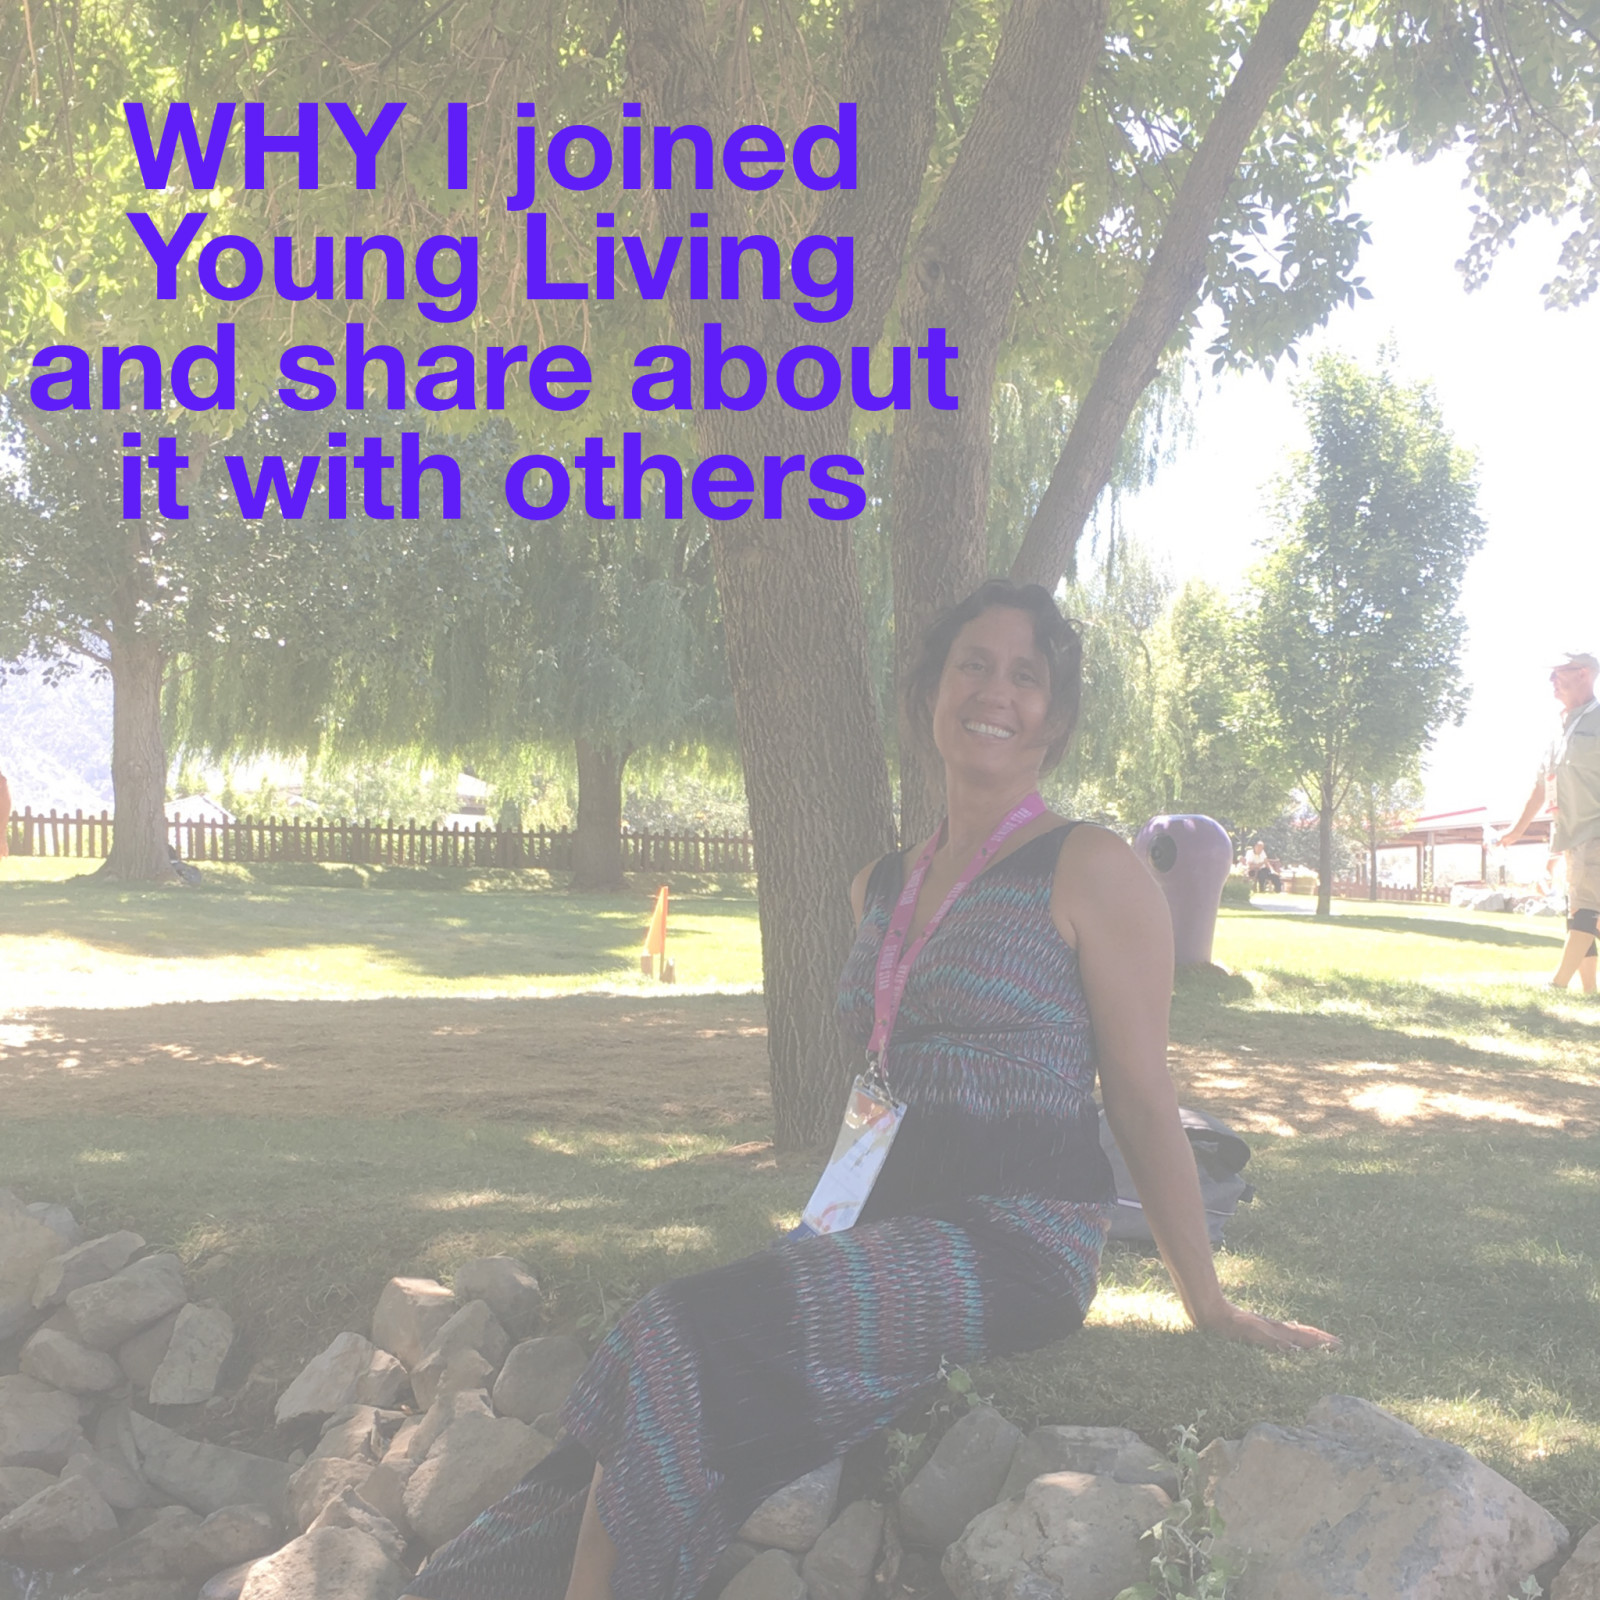 WHY I joined Young Living and Made Sharing About It My Lifetime Career